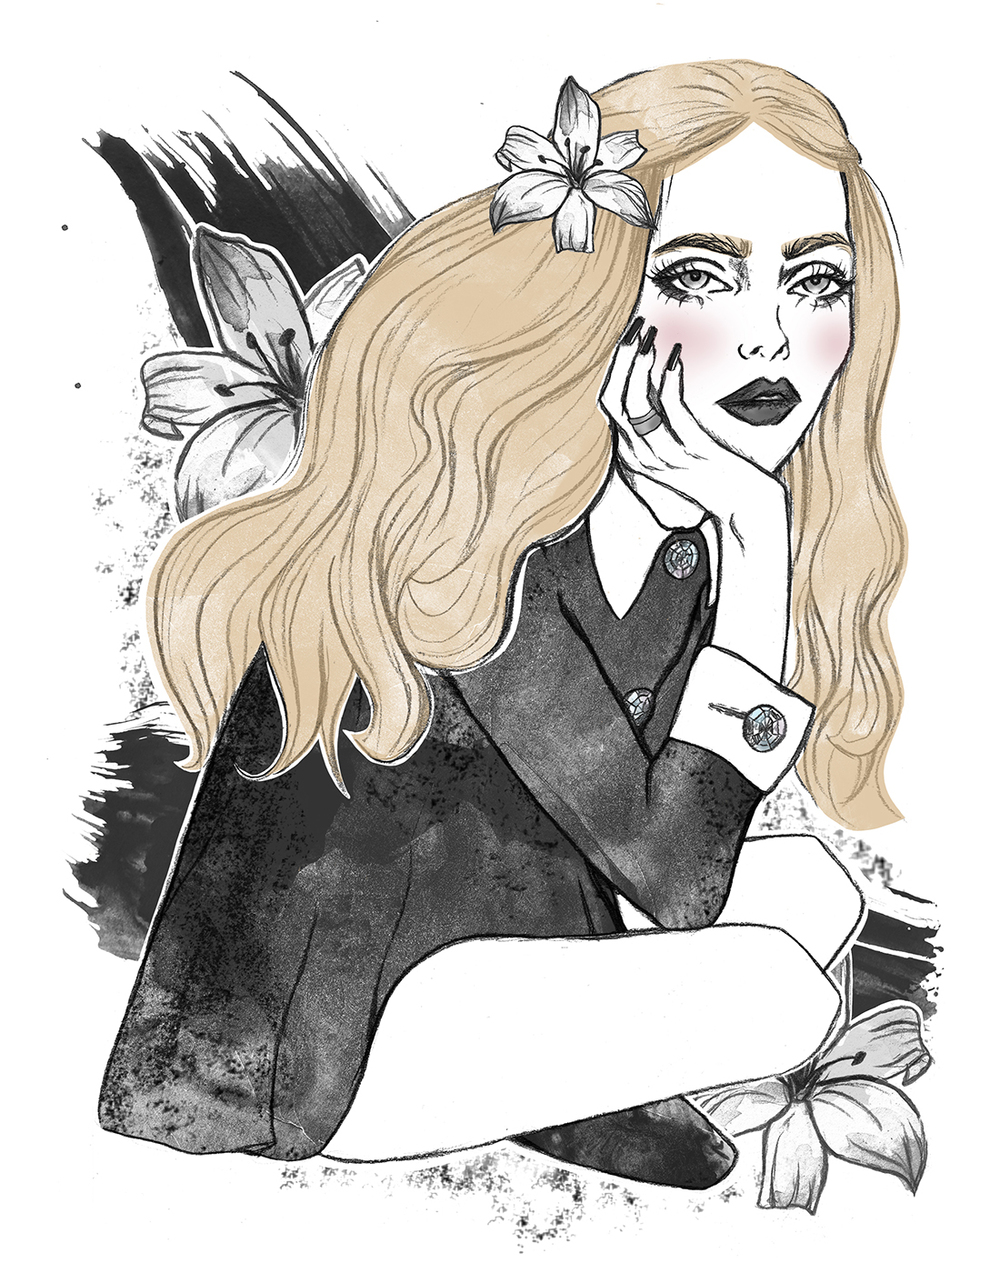 Graphite and digital colouring    Inspired by Cara in W Magazine